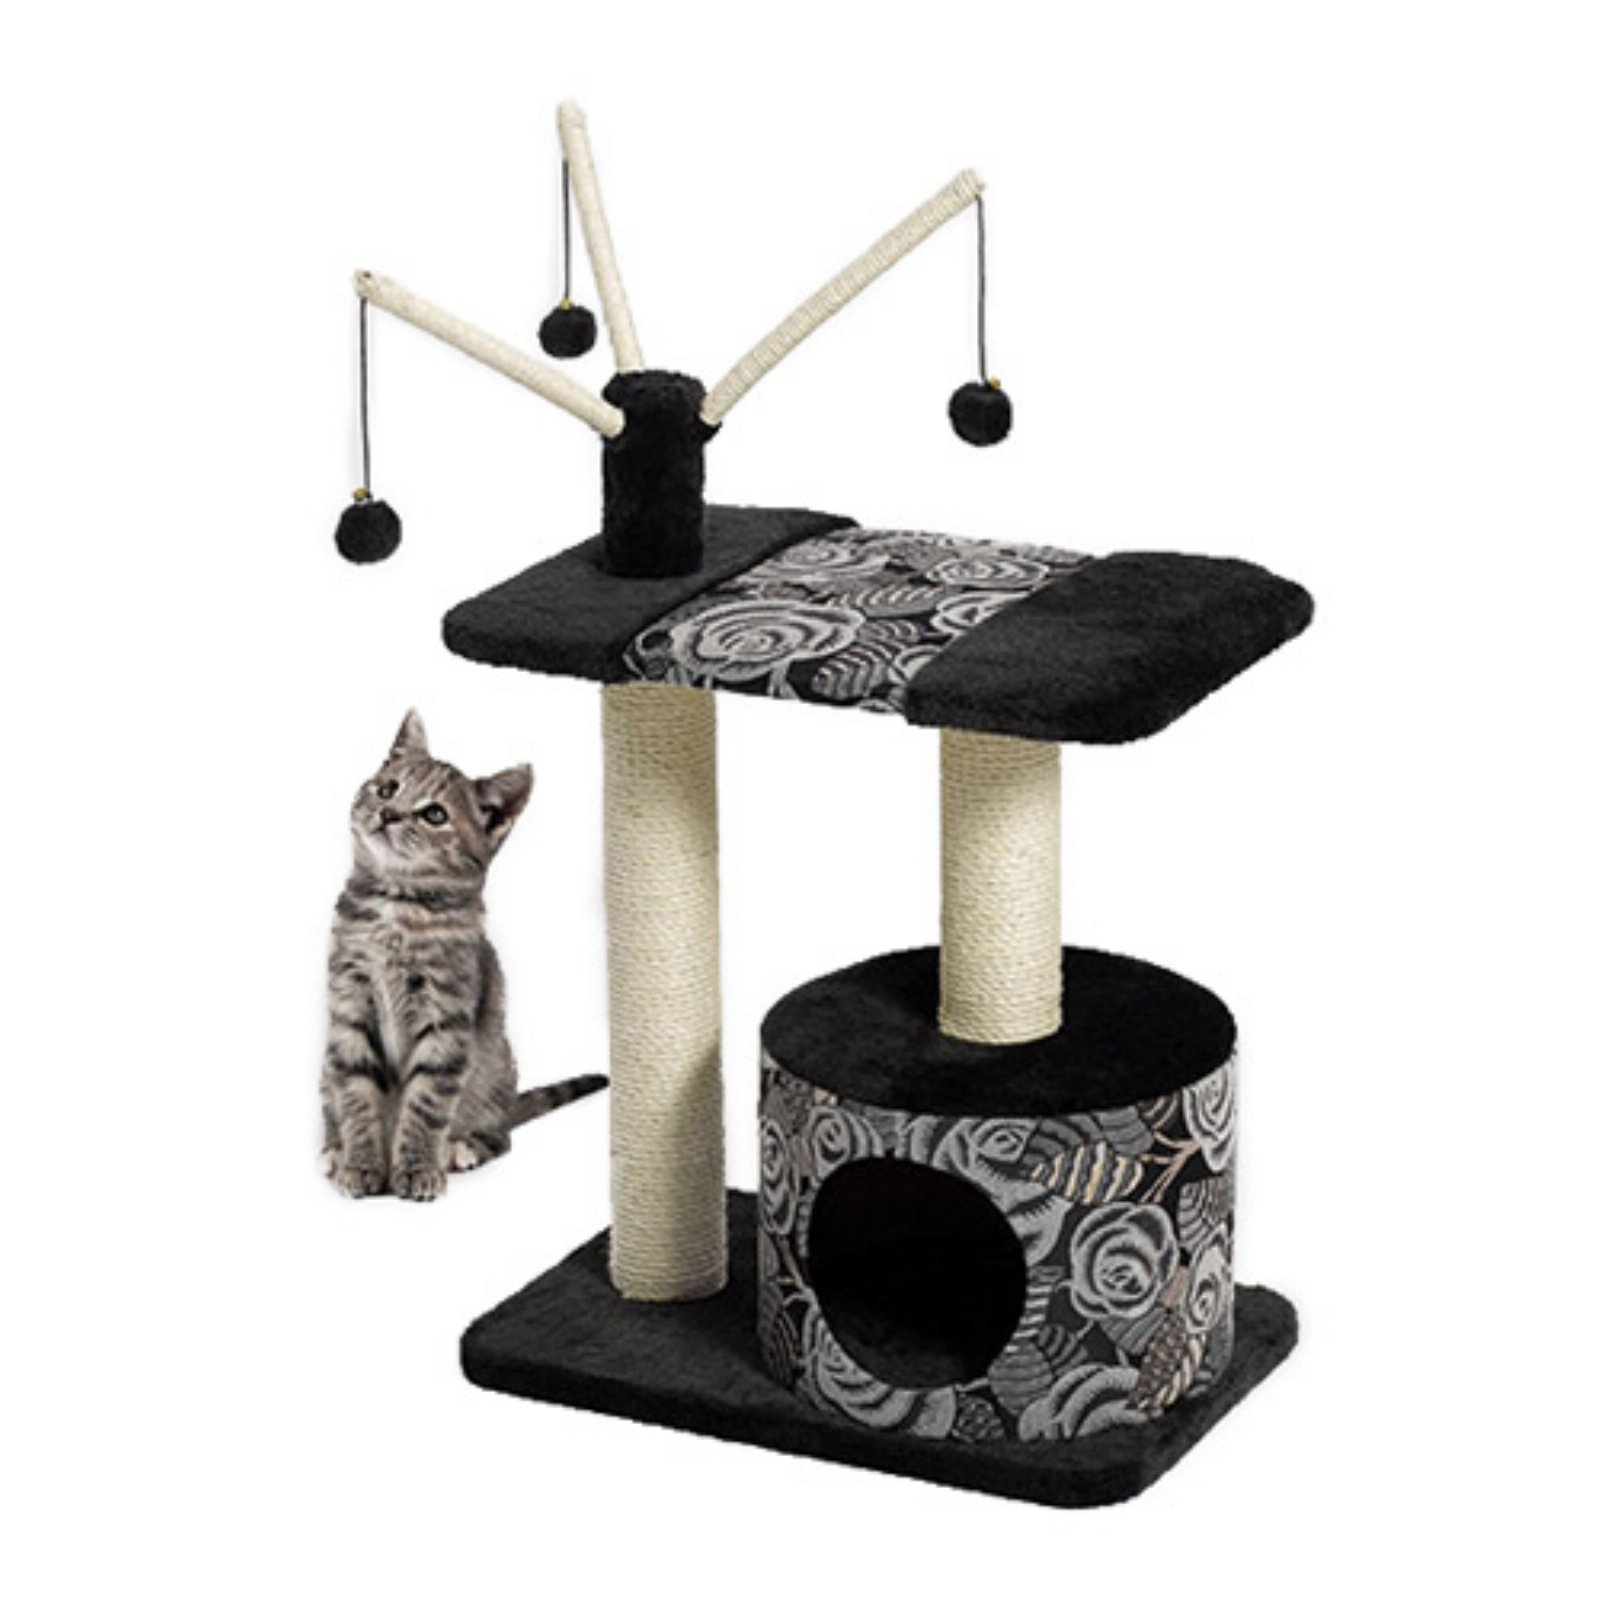 Midwest Cat Furniture in Carnival style